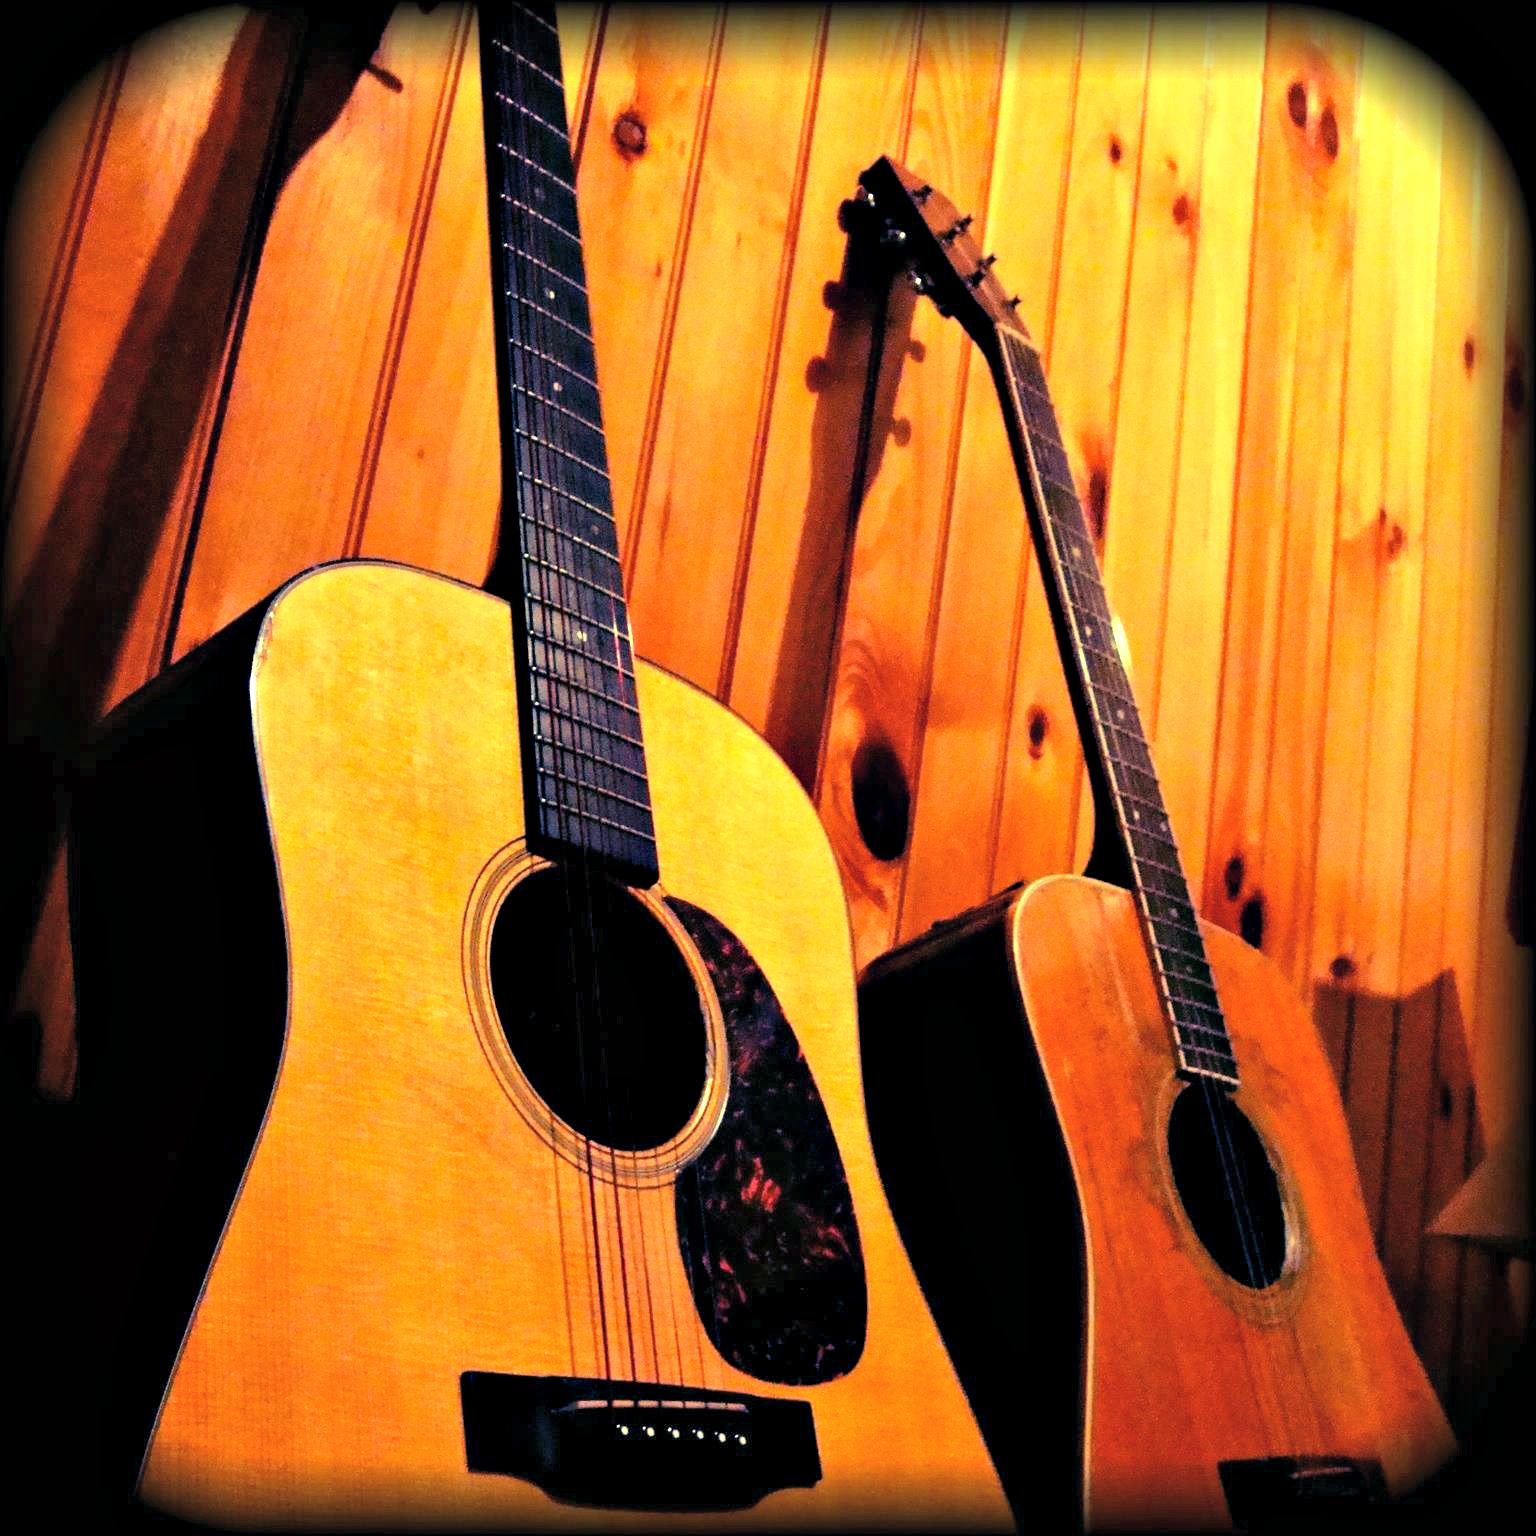 Frank Brown International Songwriters' Festival two guitars propped against a paneled wall